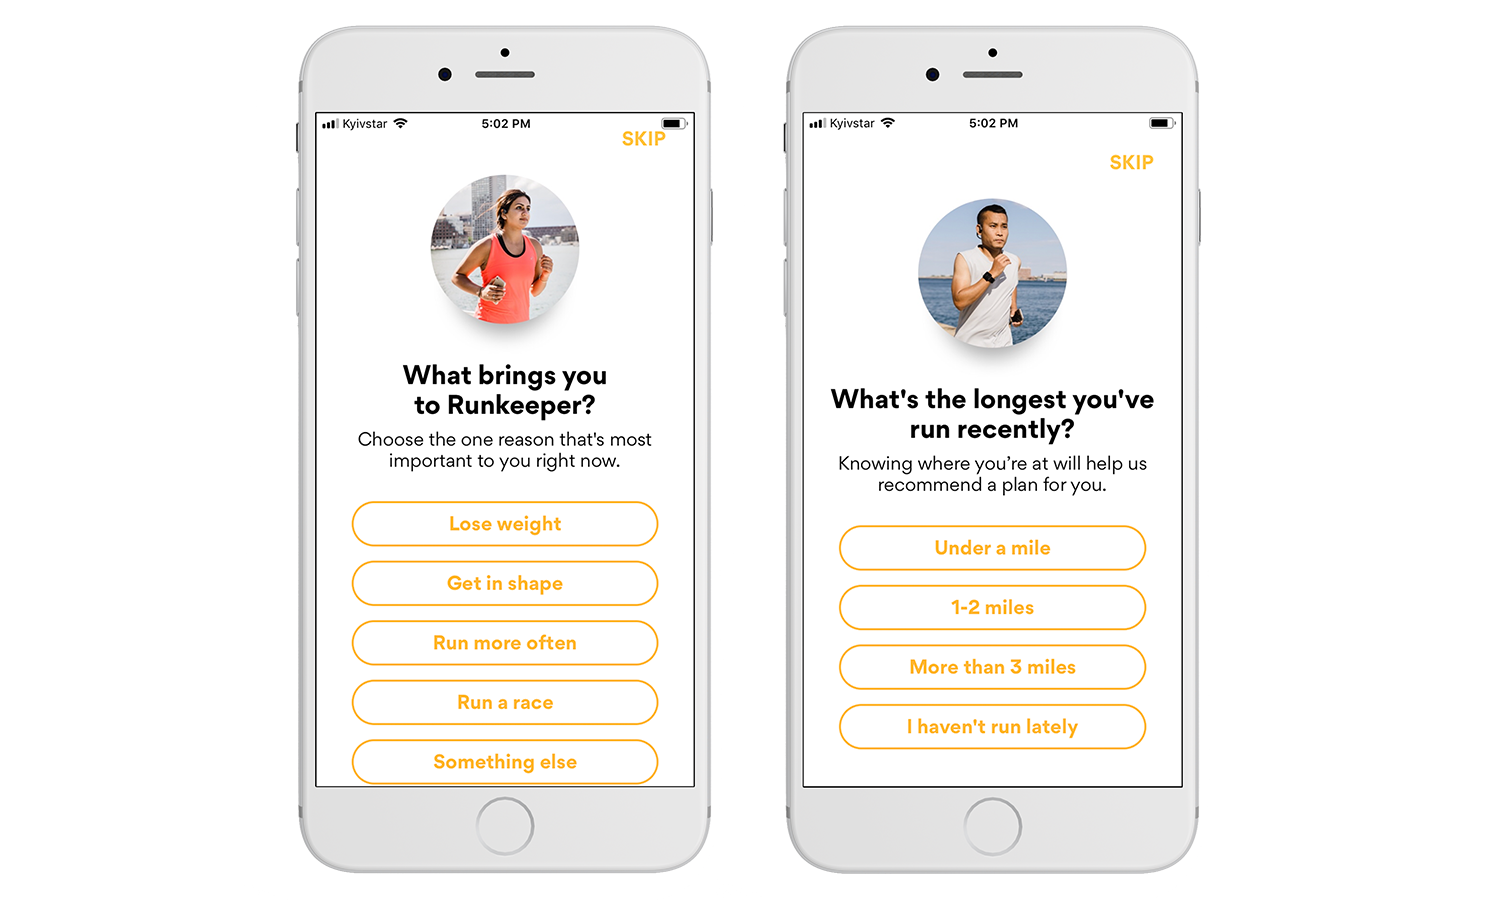 Development of an app like Runkeeper